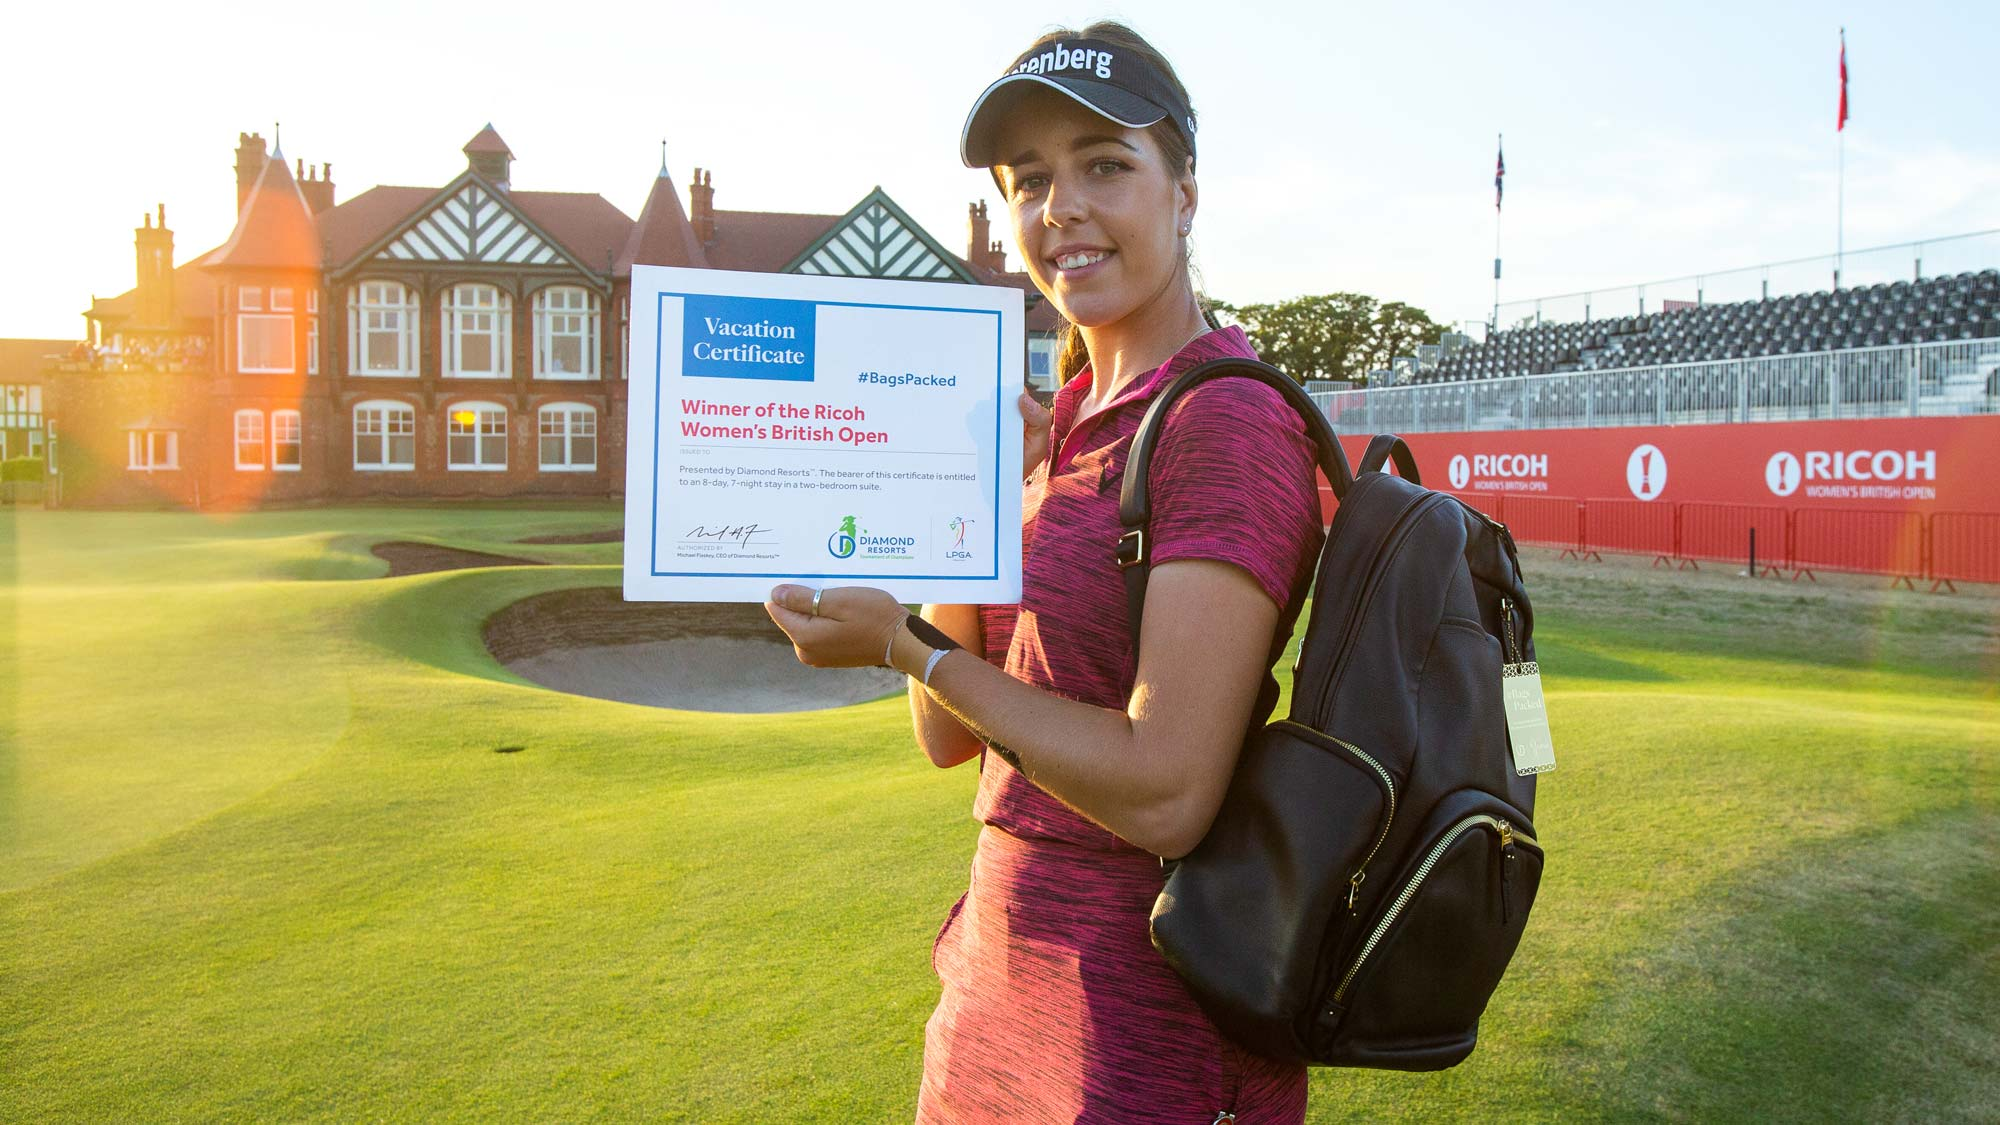 Georgia Hall has her #BagsPacked for the 2019 Diamond Resorts Tournament of Champions after her first career LPGA victory at the 2018 Ricoh Women's British Open